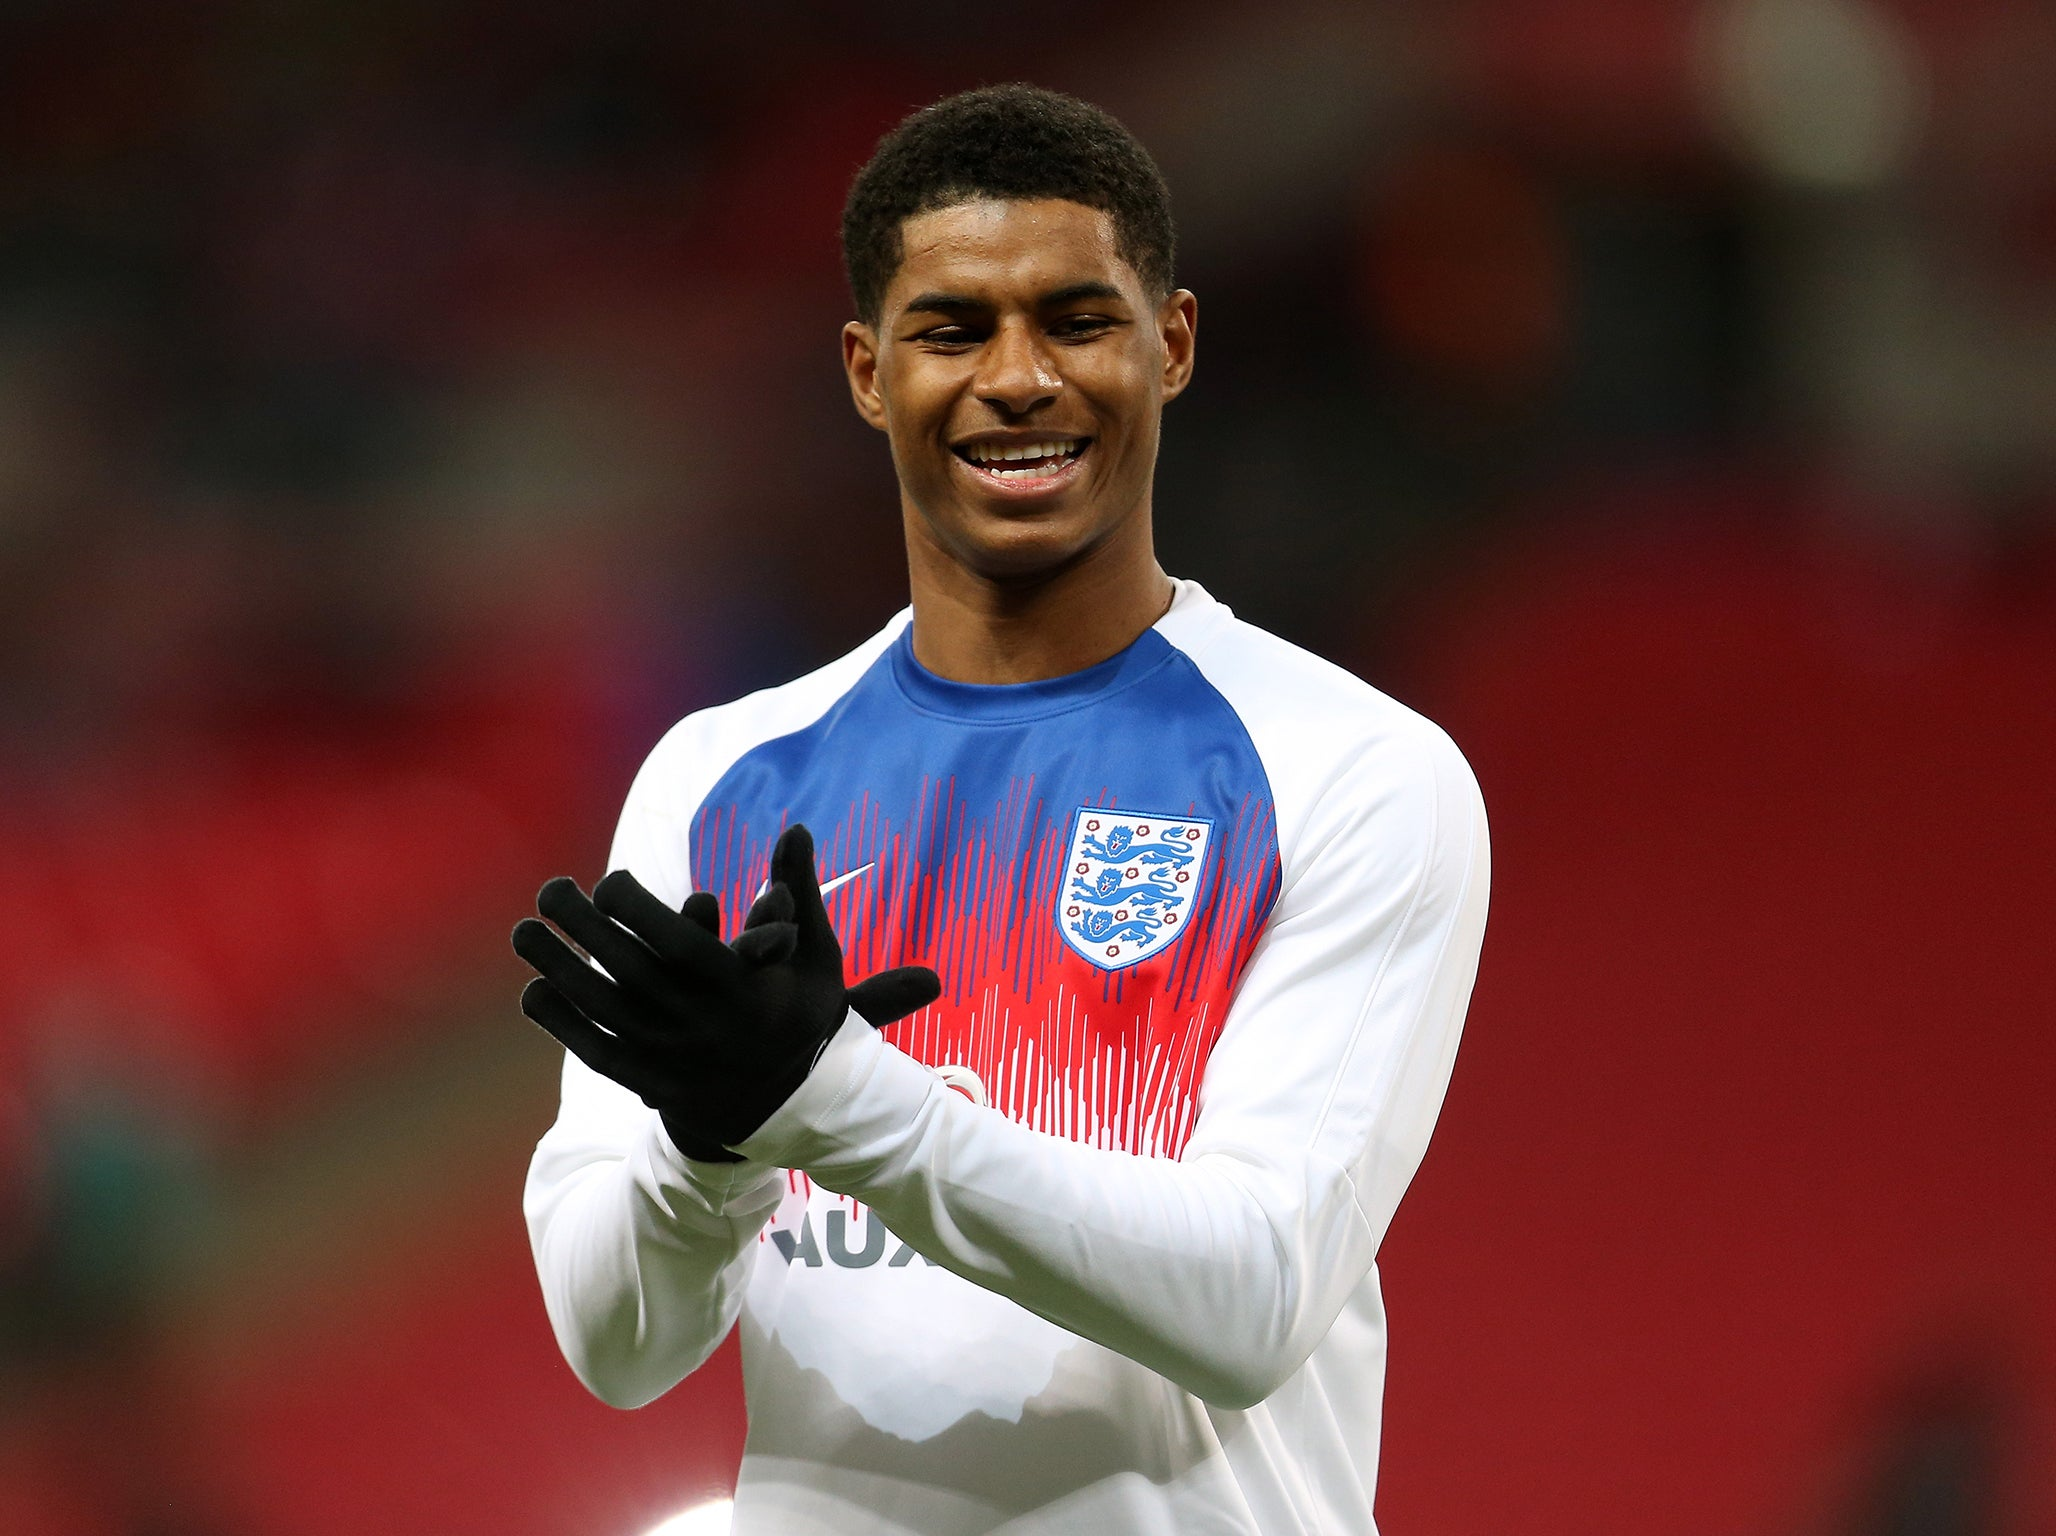 Marcus Rashford On England S World Cup Chances Manchester United S Season And Jose Mourinho The Independent The Independent